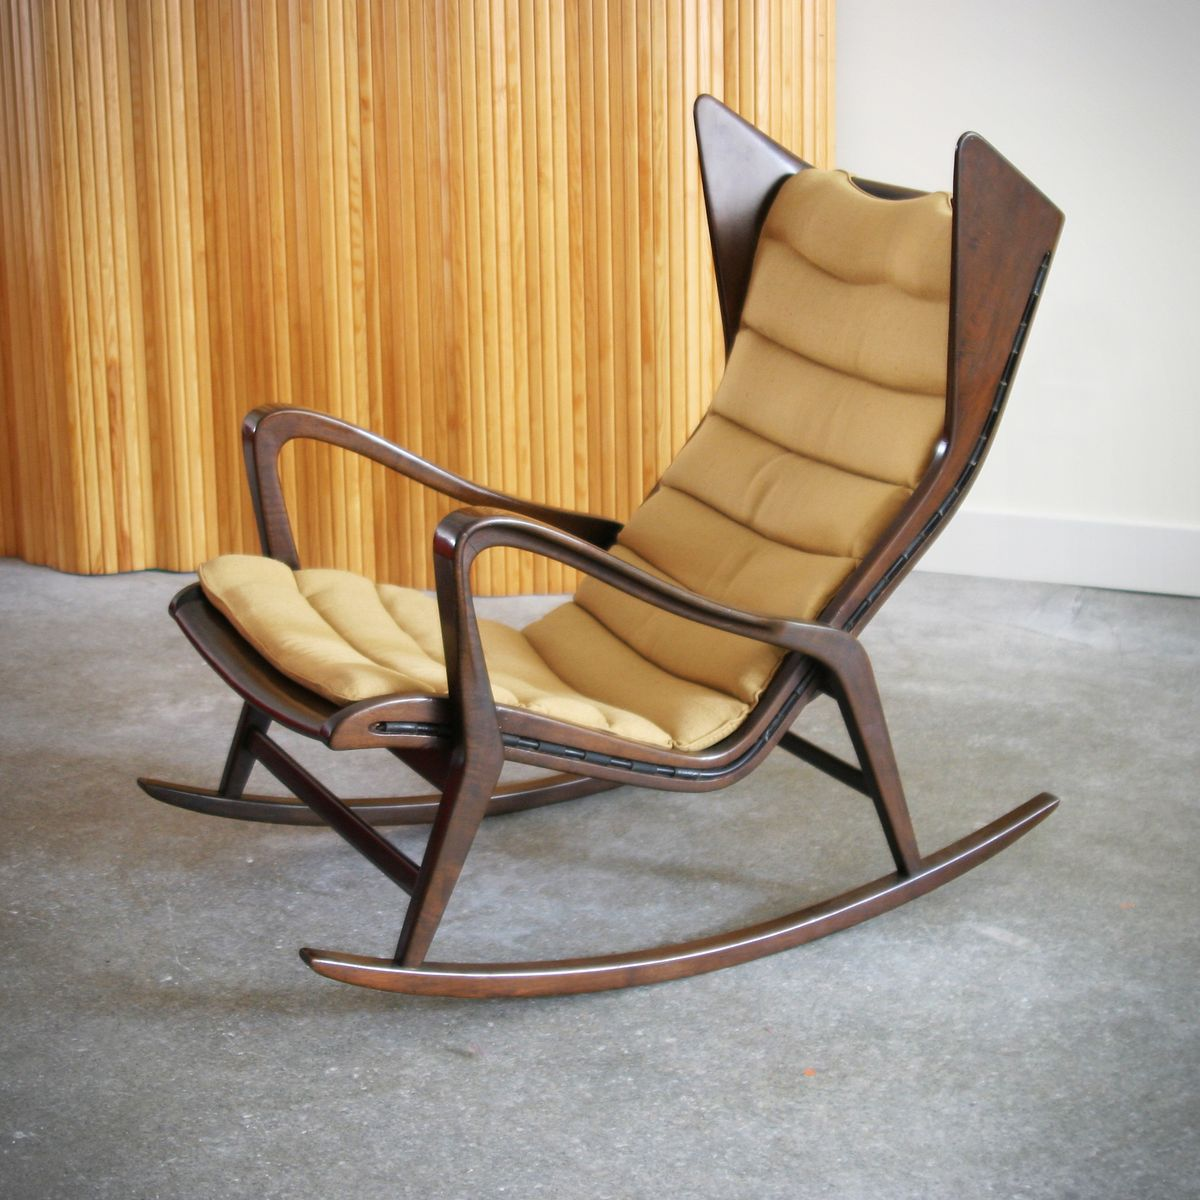 Wonderful image of Vintage Rocking Chair by Gio Ponti for Cassina for sale at Pamono with #A67725 color and 1200x1200 pixels